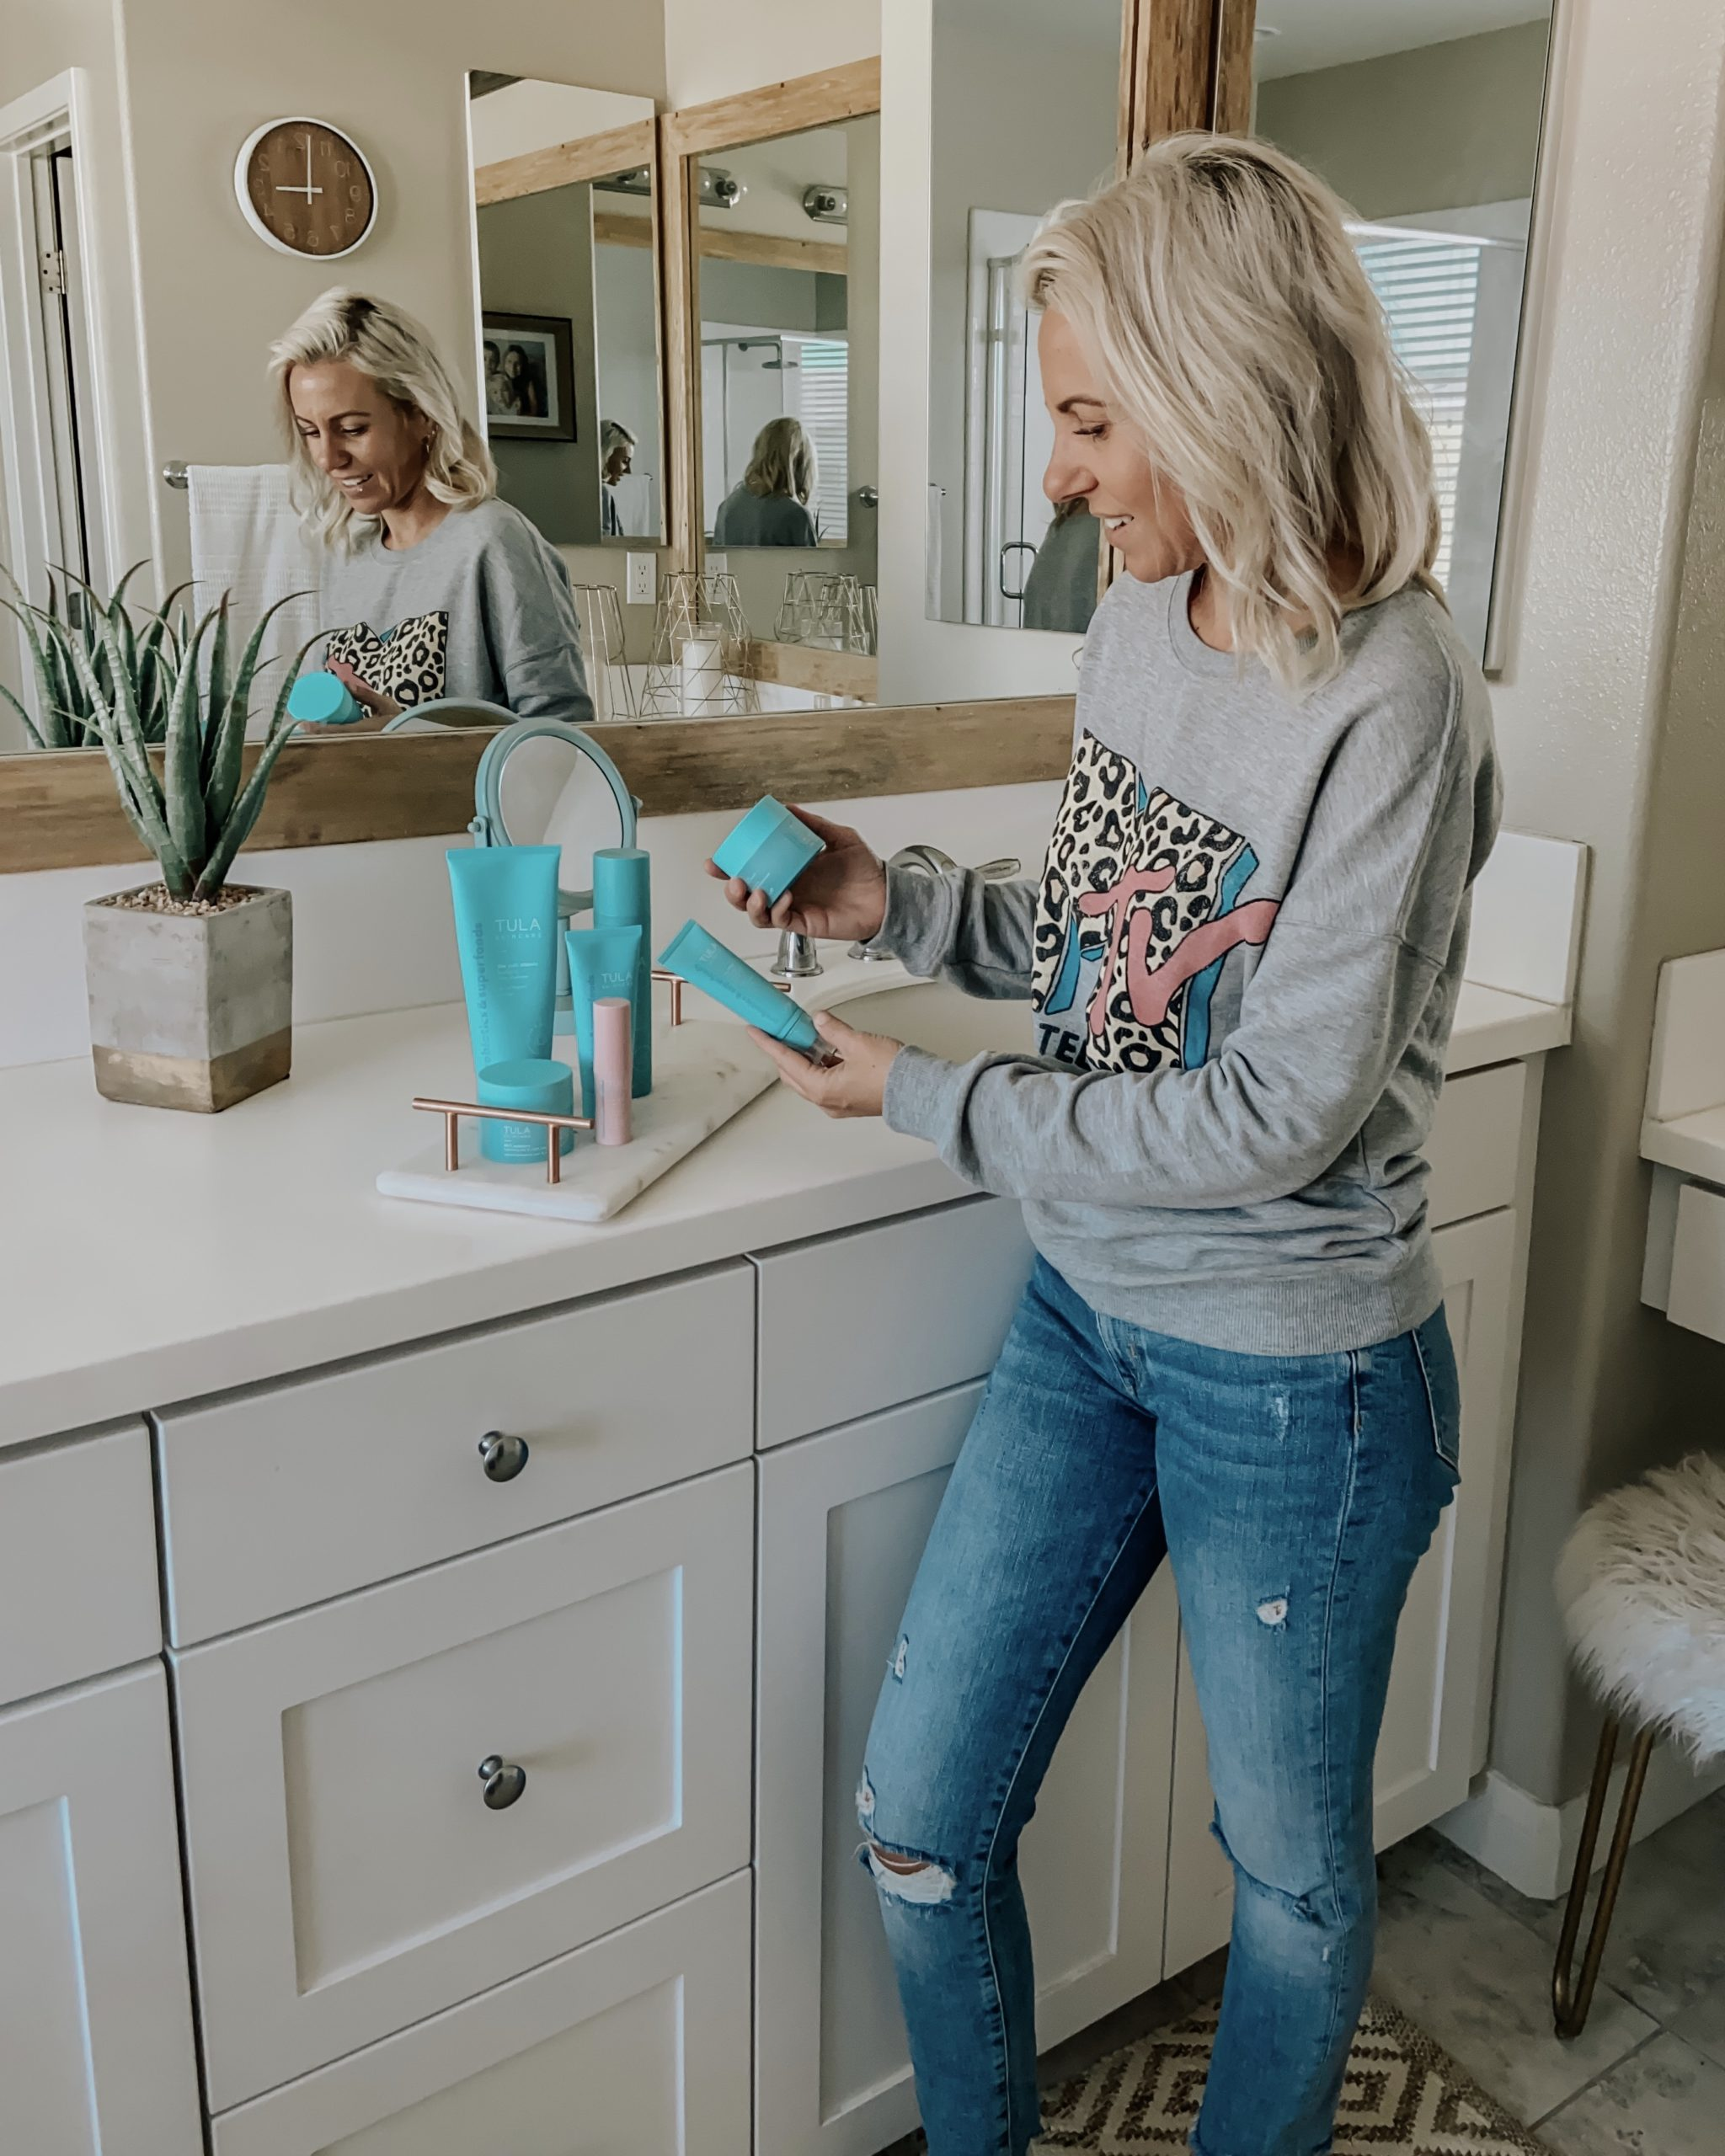 TULA FAVORITES- Jaclyn De Leon Style+ Tula is one of my absolute favorite skincare brands and since I have so many of their products I thought I would run down my top favorites